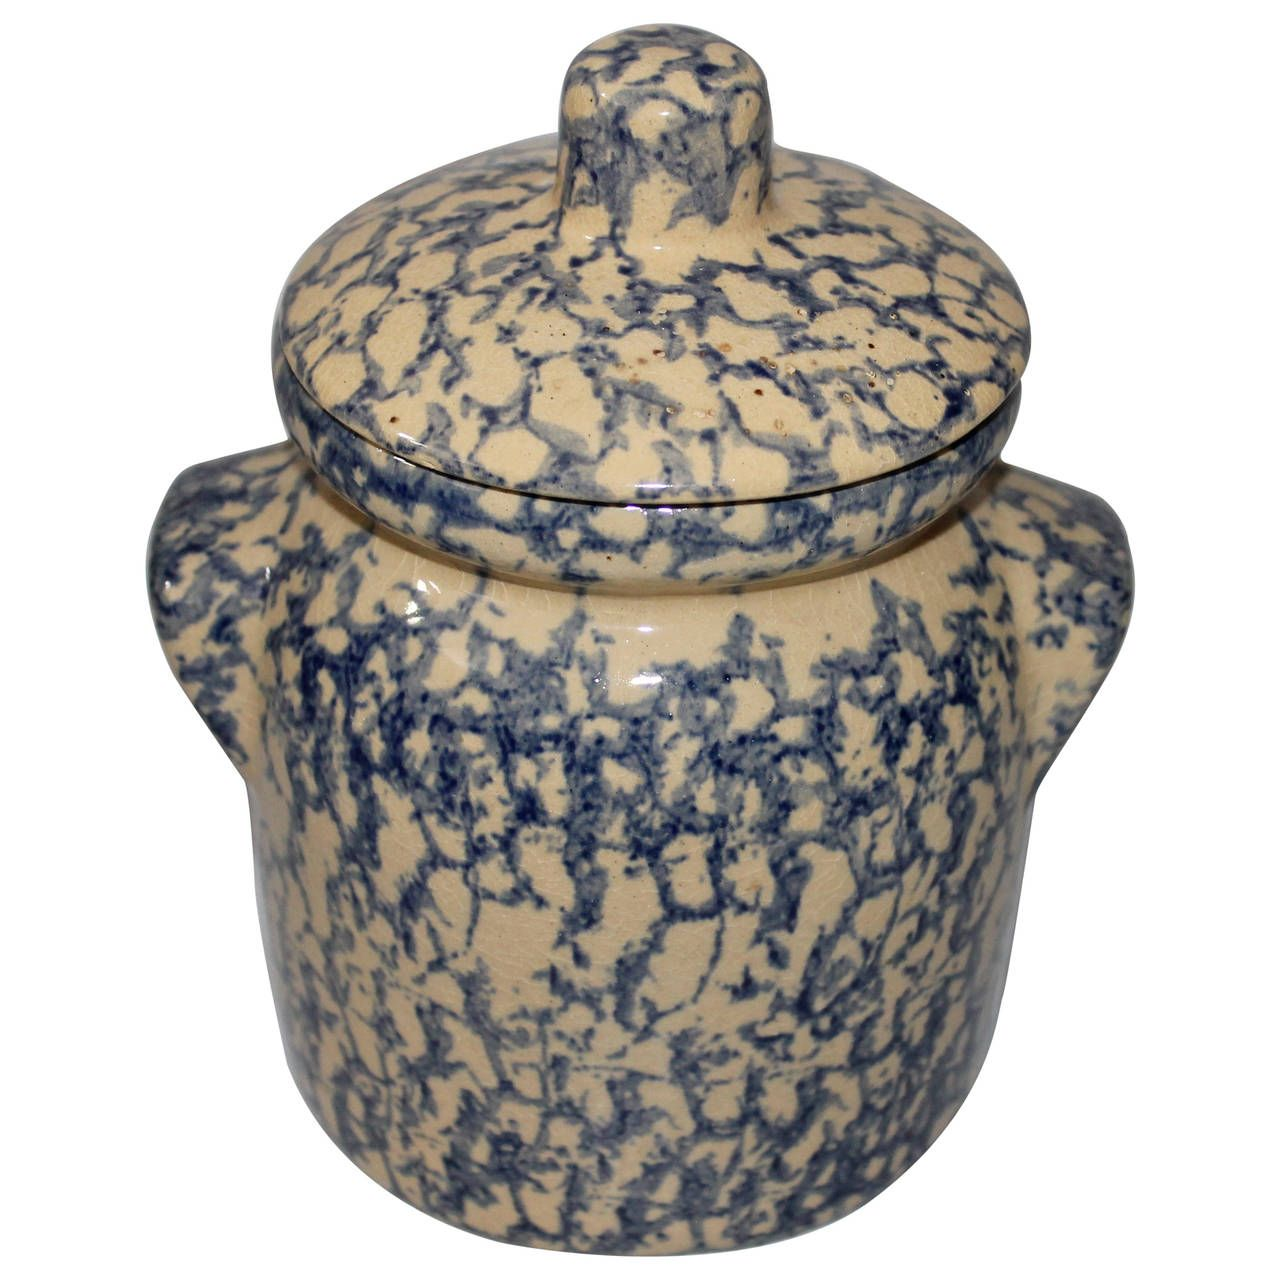 1stdibs Ceramic Spongeware Canister Jar Country American Ceramic In 2020 Jar Canisters Pottery